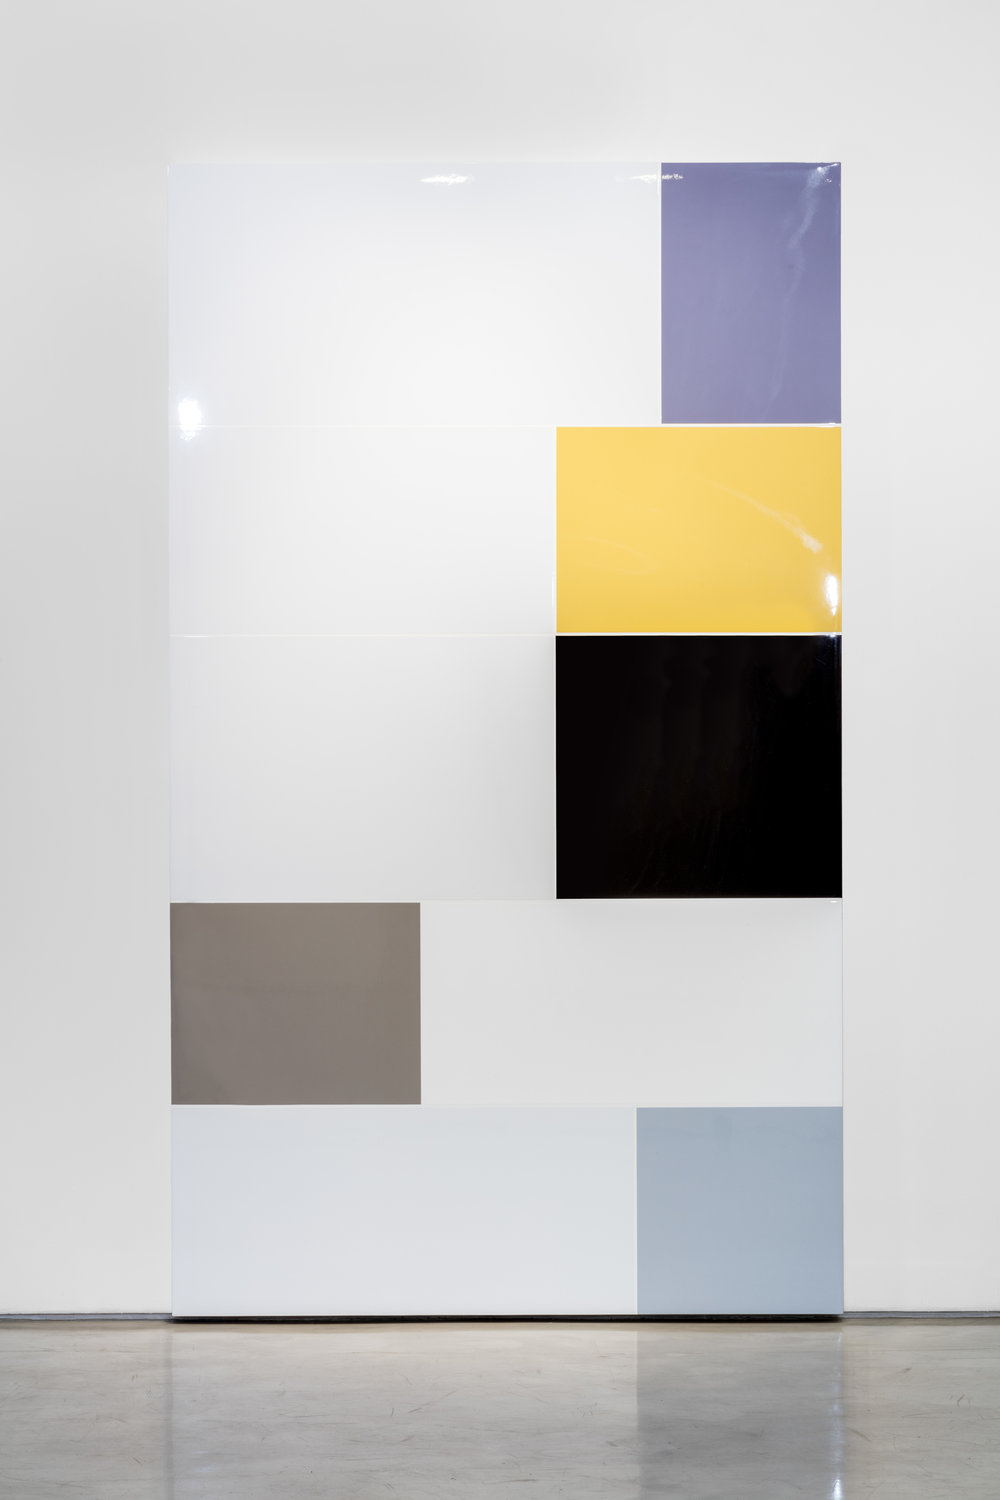 Heyoka (P.S. Transcriptions), Polished urethane on canvas, 96 X 56 inches, 2015